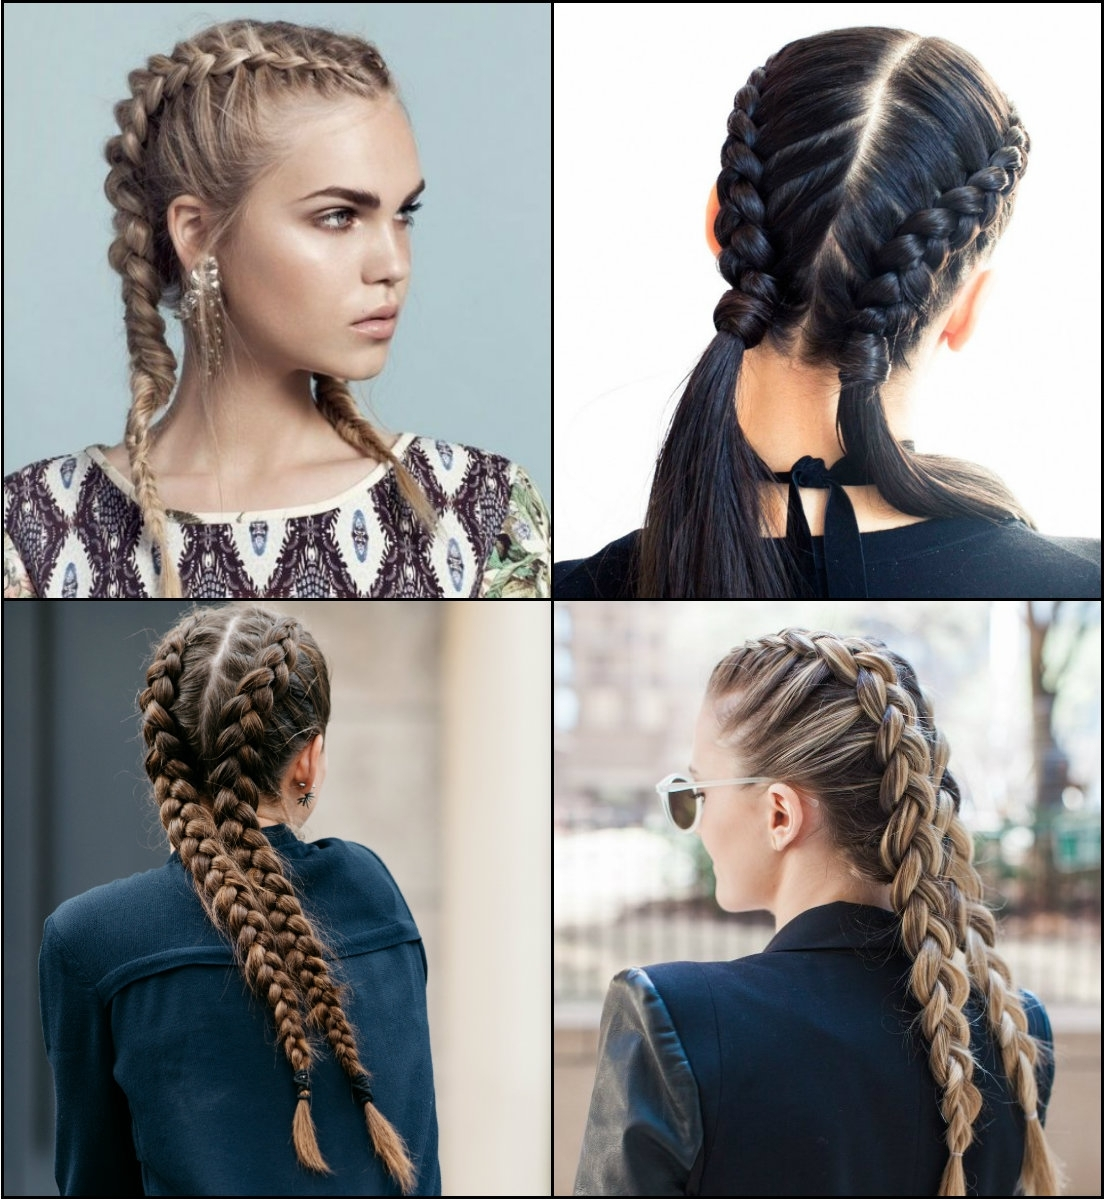 Volitional Double Braids Hairstyles To Dare Look Different Within Most Recently Released Blonde Ponytails With Double Braid (Gallery 8 of 20)